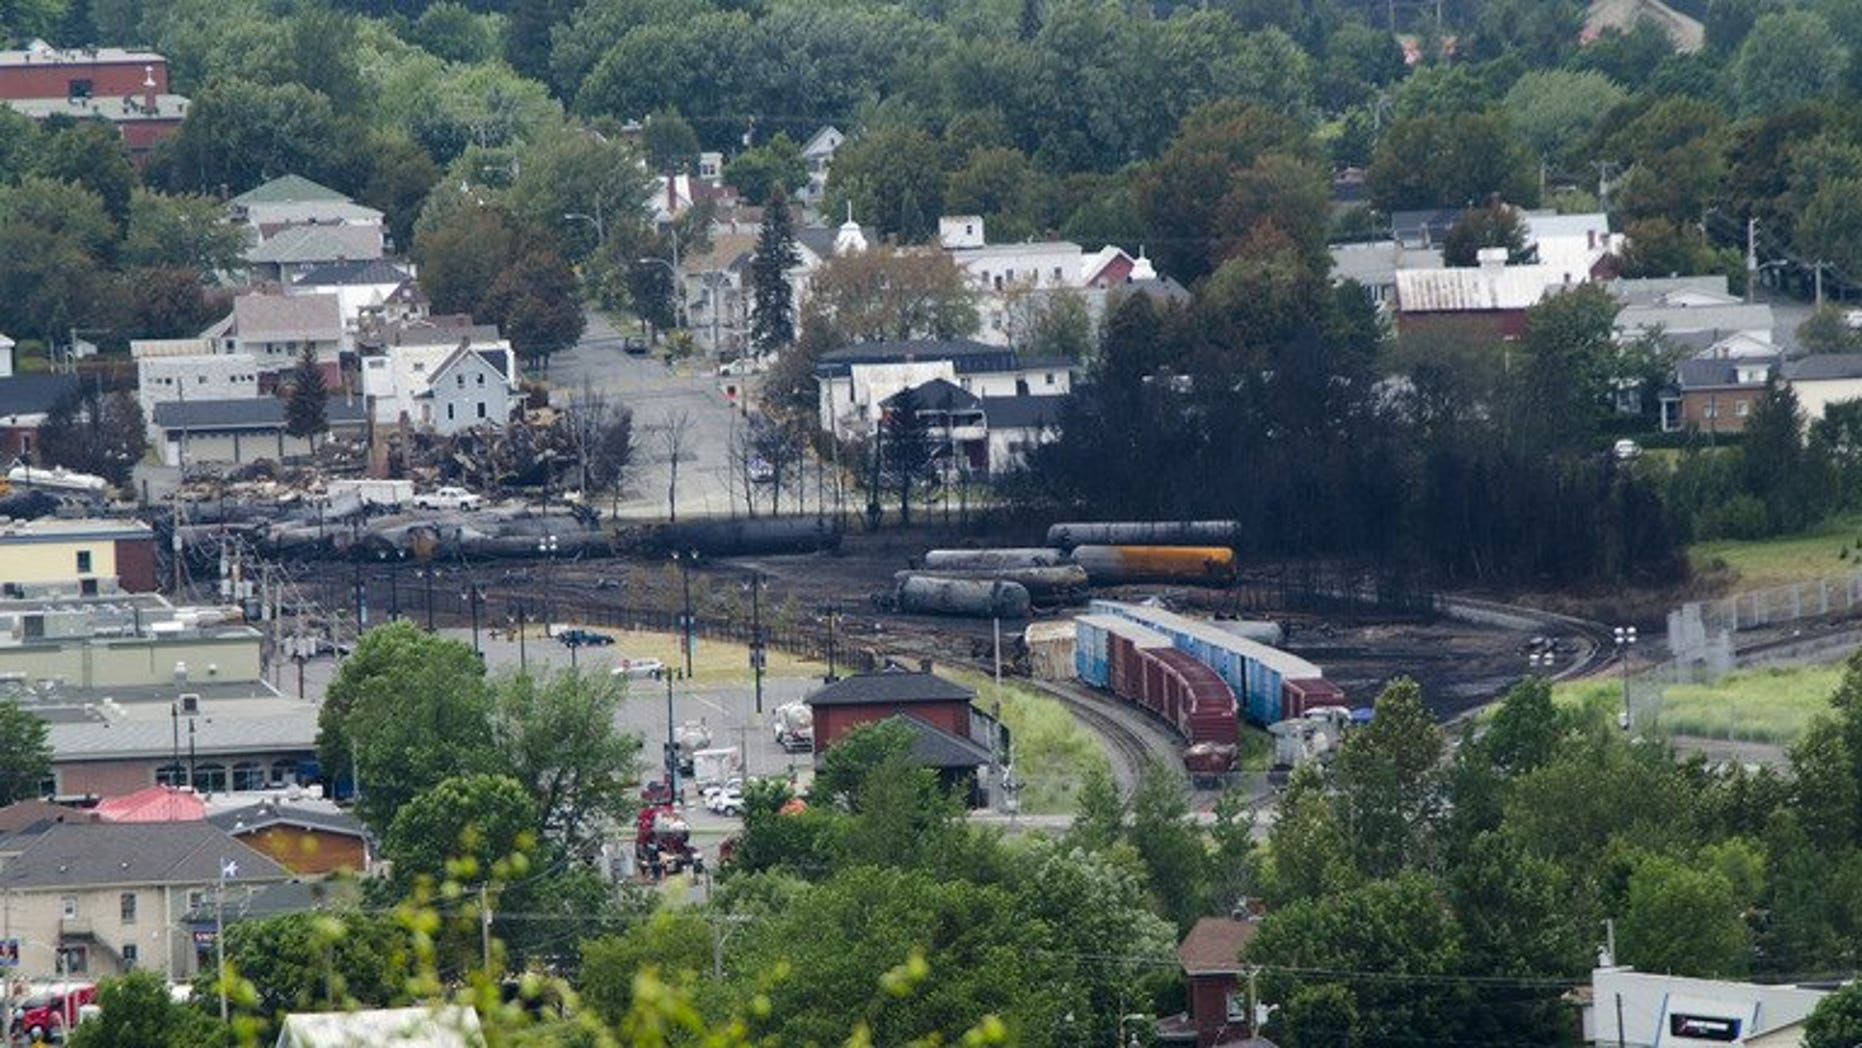 Scorched oil tankers remain on July 10, 2013 at the train derailment site in Lac-Megantic, Quebec. Police on Thursday raided the Canadian regional office of the Montreal, Maine & Atlantic (MMA) railway, looking for evidence in a criminal investigation of a train derailment that killed 47 people.